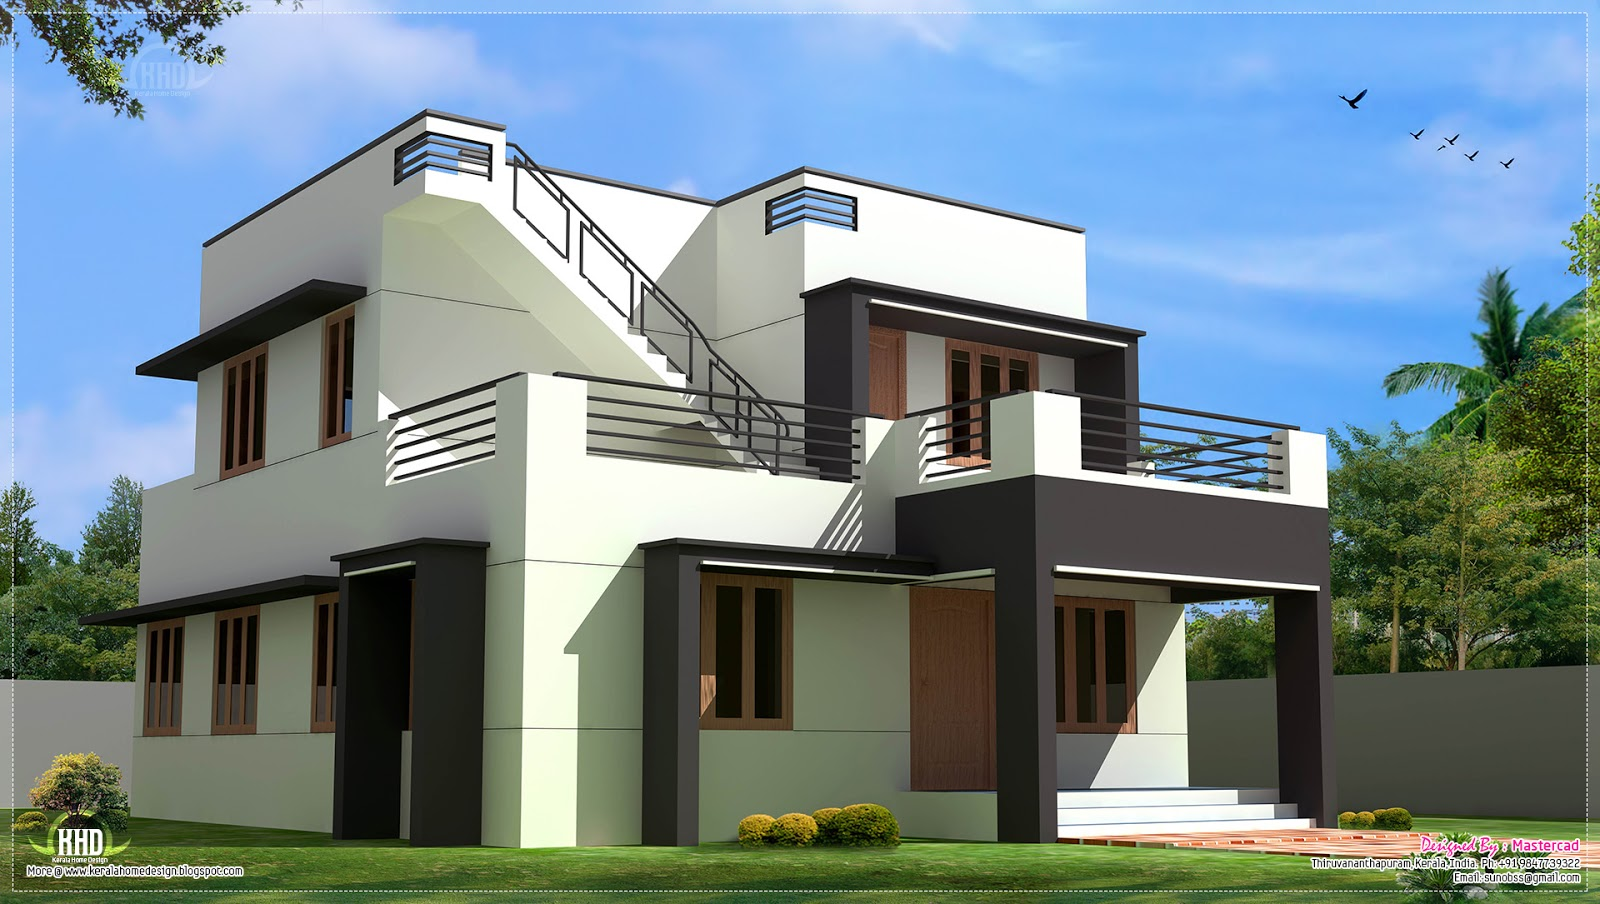 Modern house design in 1700 kerala home design for Kerala home designs contemporary